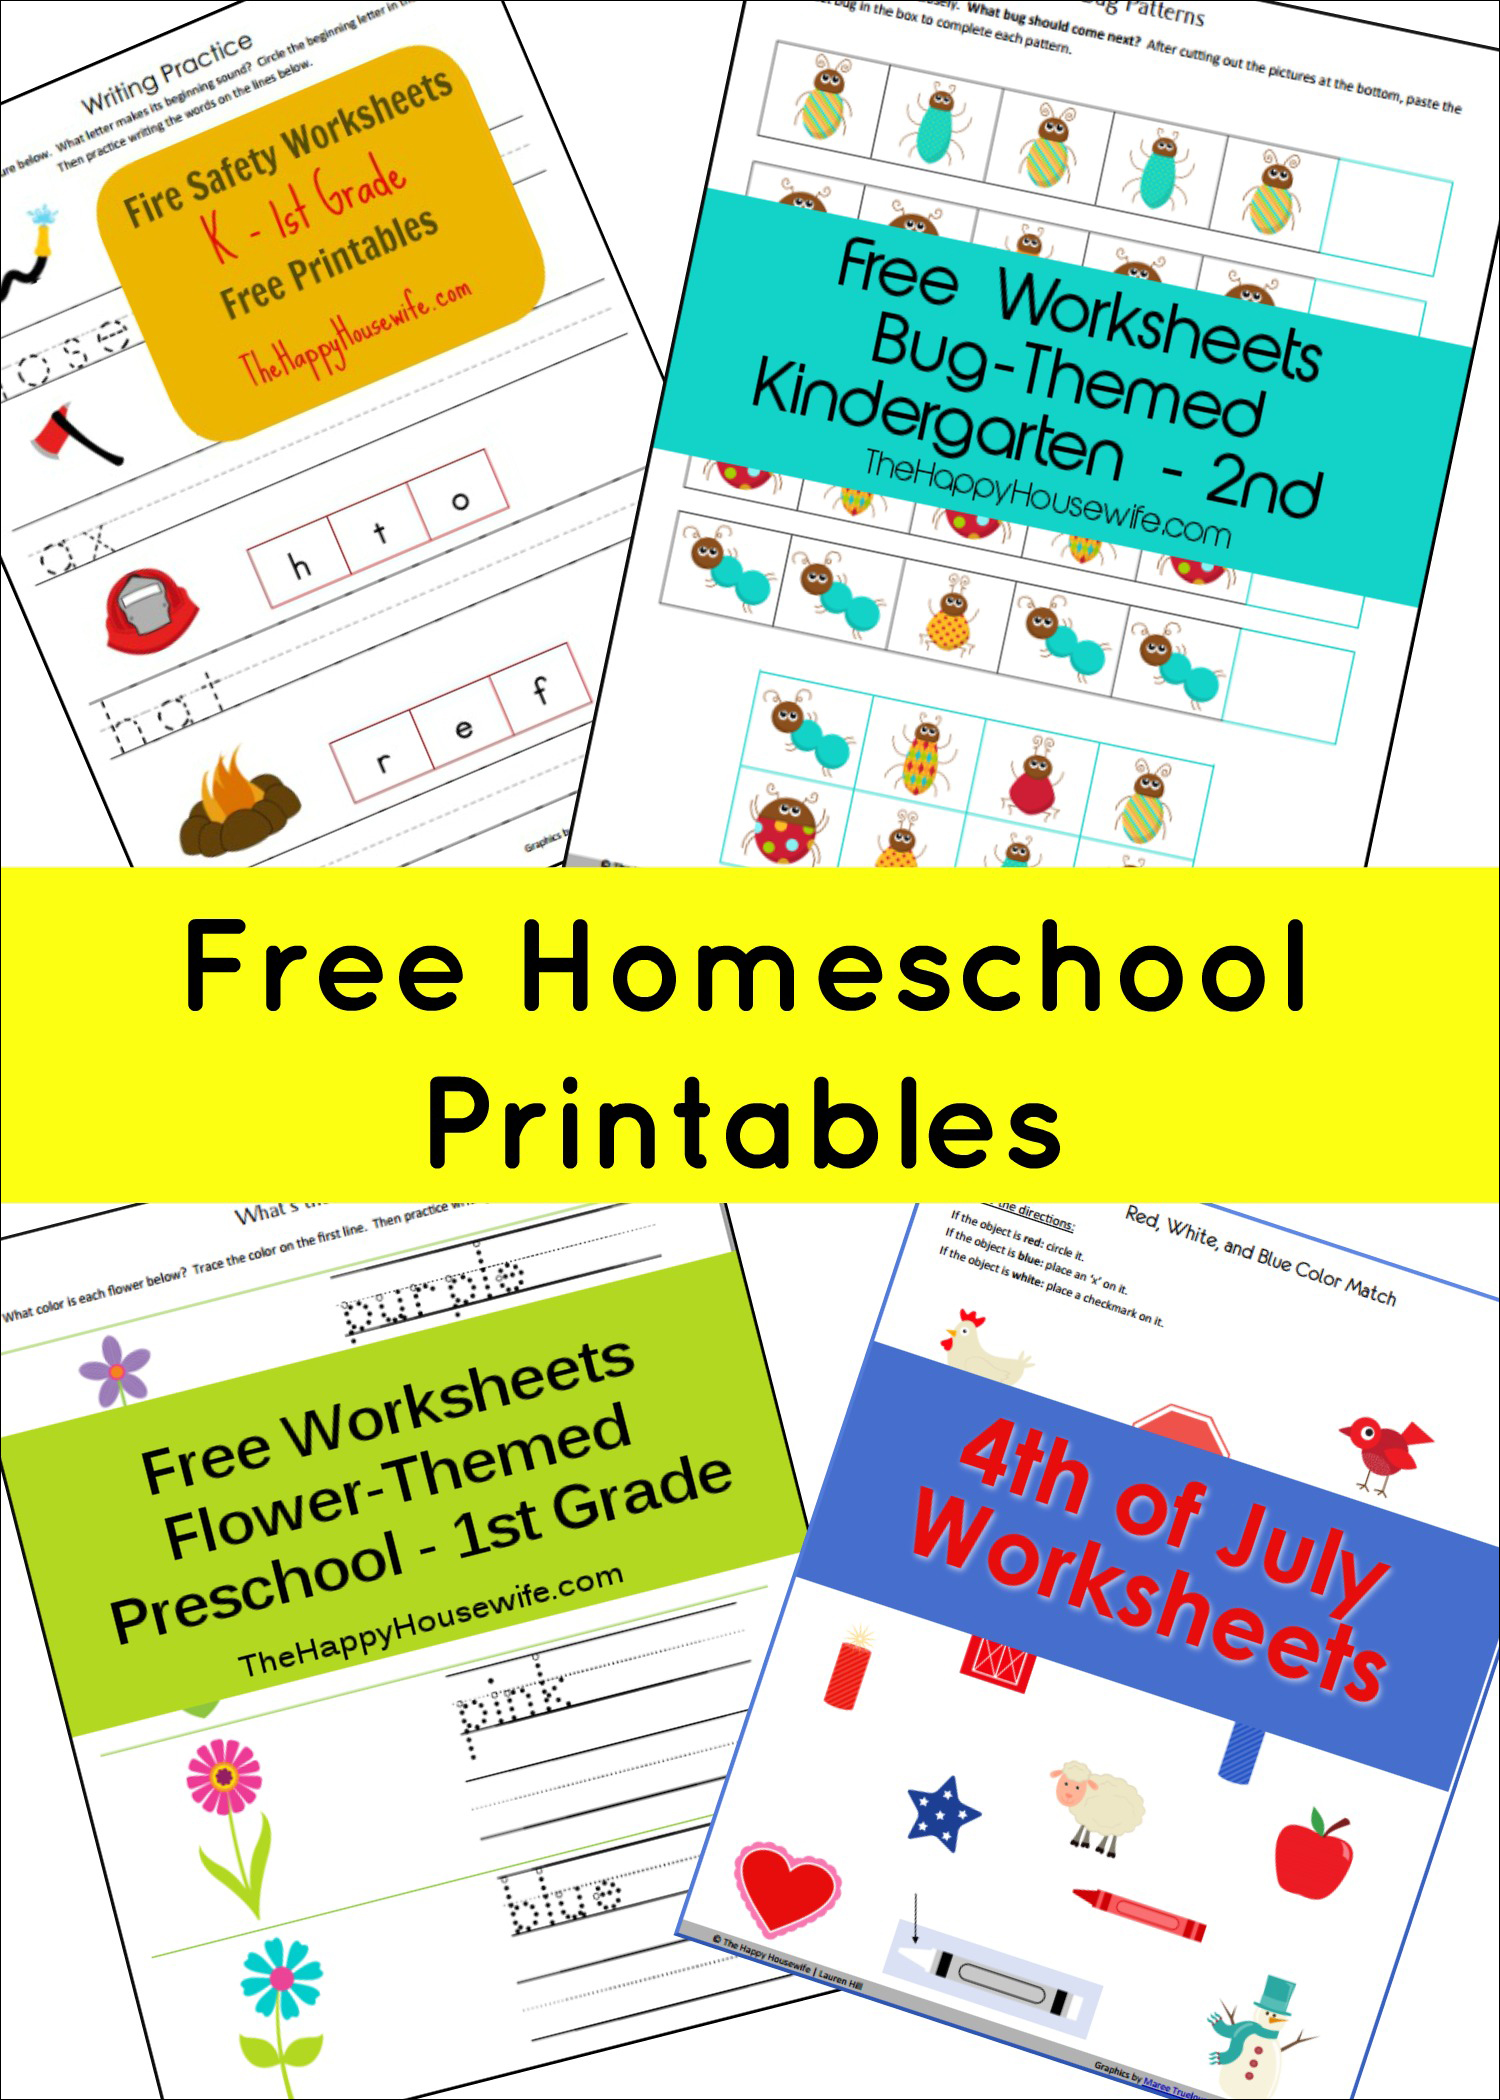 Homeschool Free Printables The Happy Housewife Home Schooling – Homeschooling Worksheets